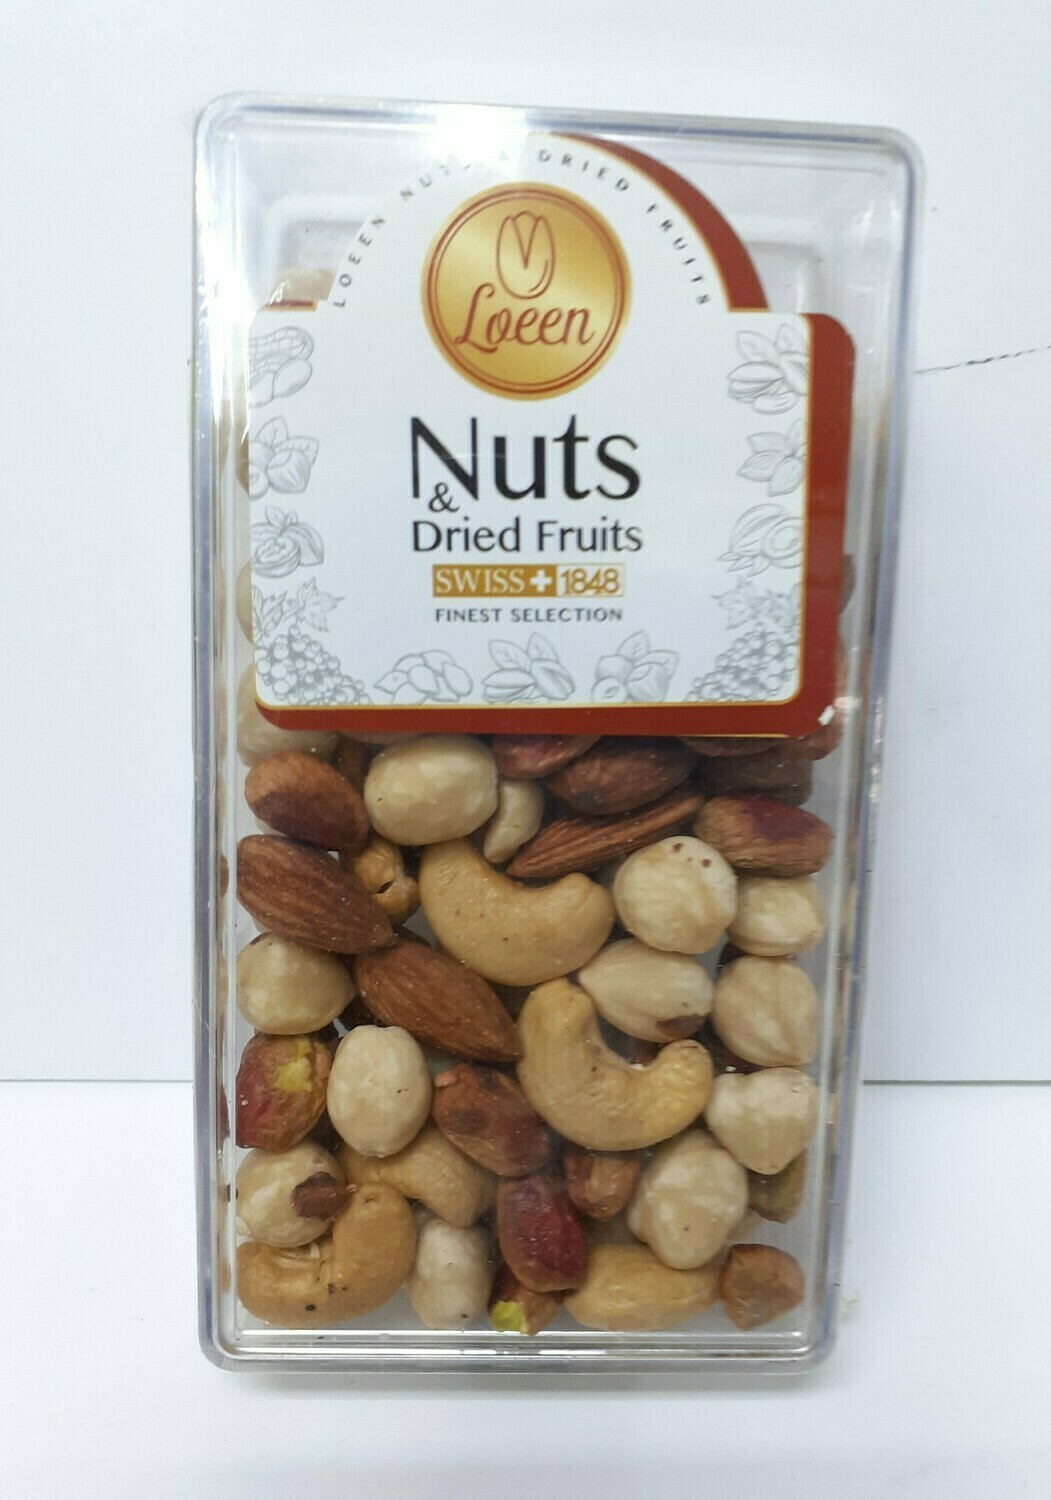 Nuts Dried Fruits LOEEN 120 g